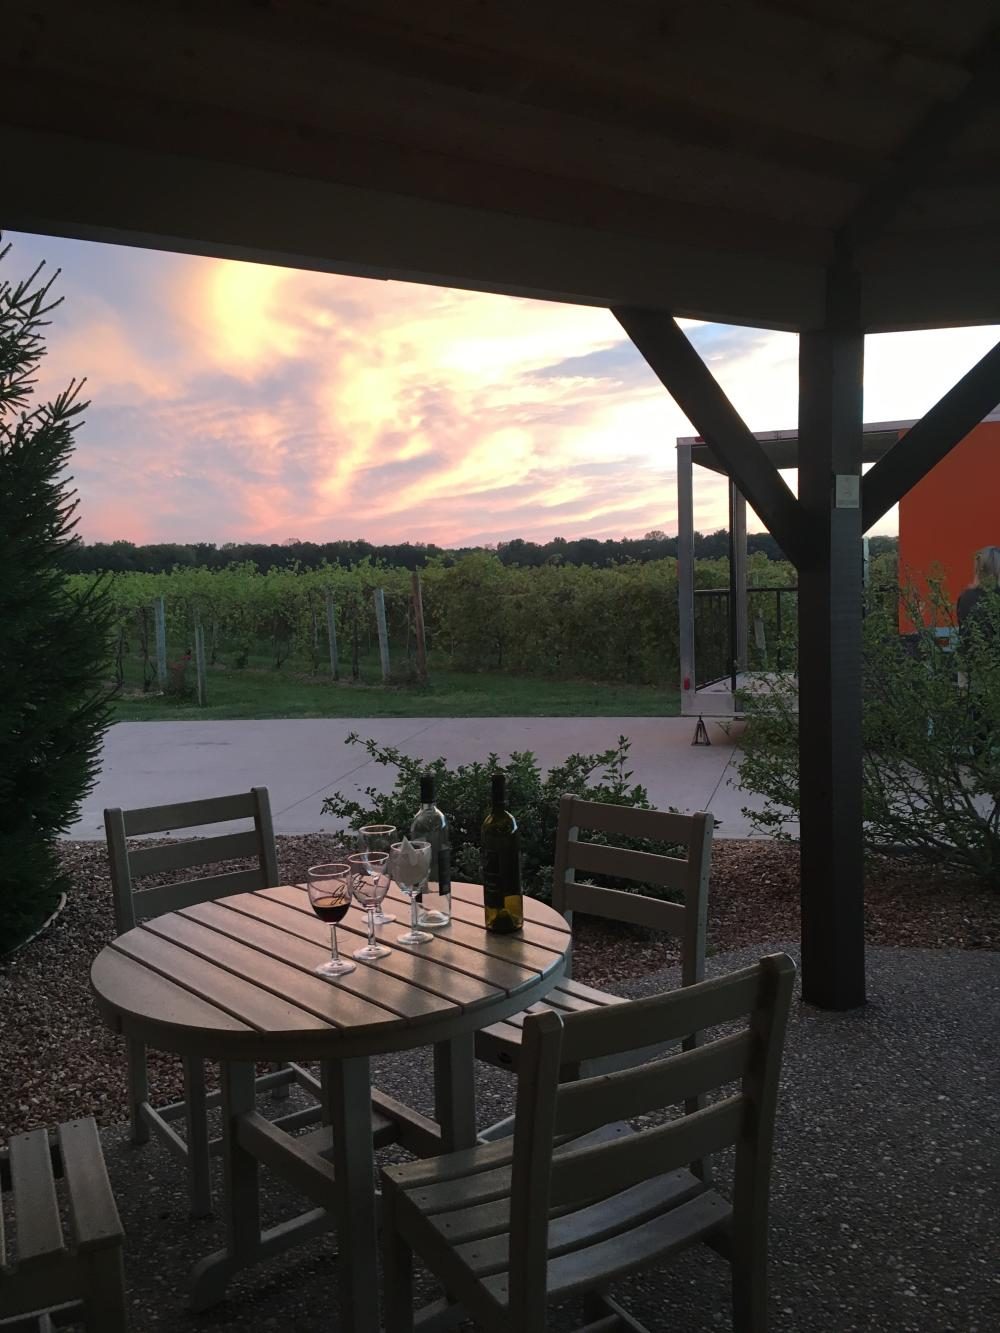 The sun sets among the vineyards of Country Heritage Winery in LaOtto.